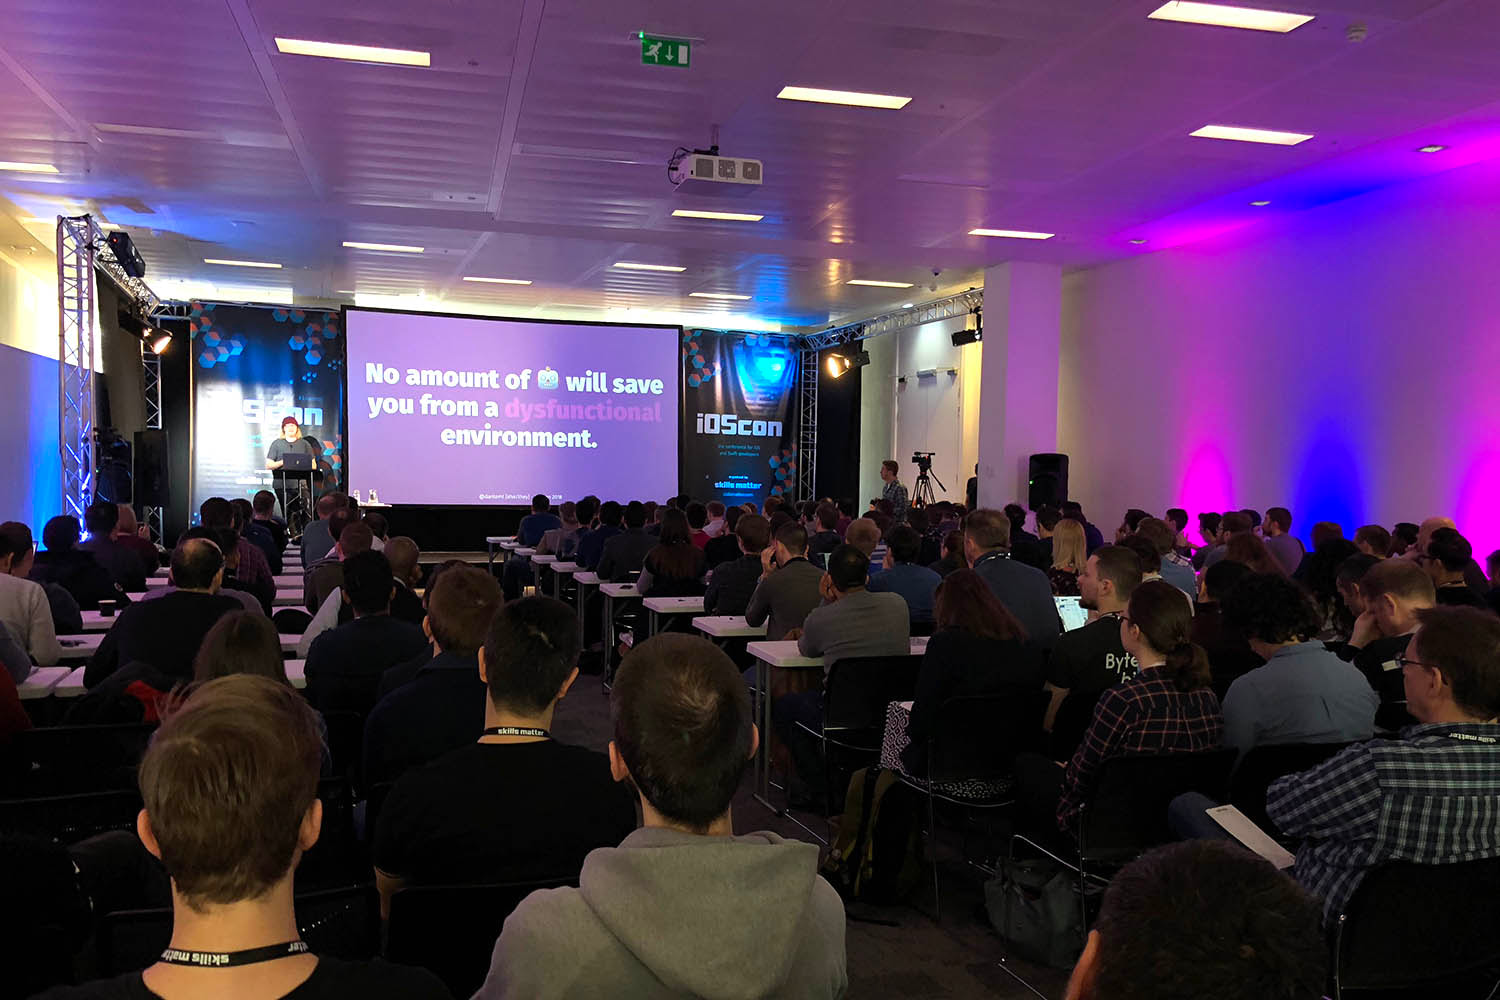 The Best Swift and iOS conferences in 2019 – Hacking with Swift